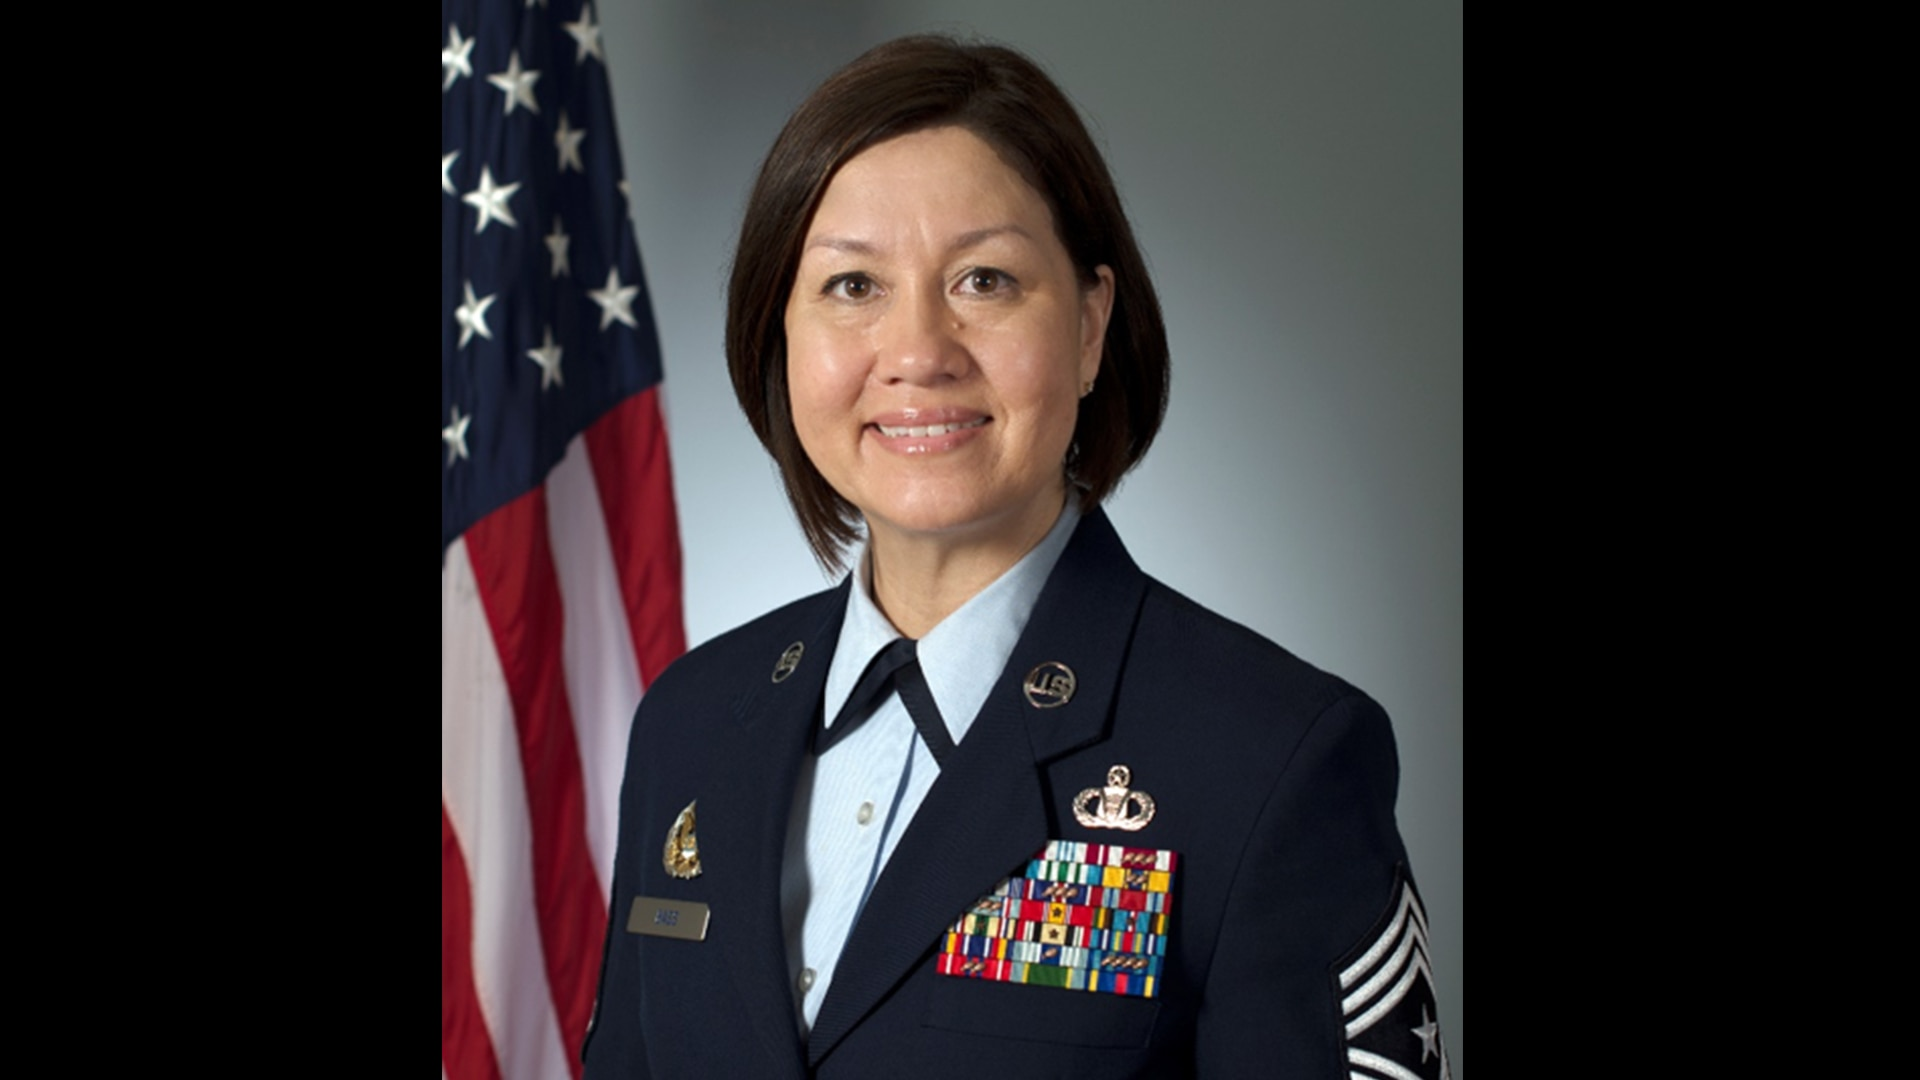 Chief Master Sgt. JoAnne S. Bass named 19th Chief Master Sergeant of the Air Force